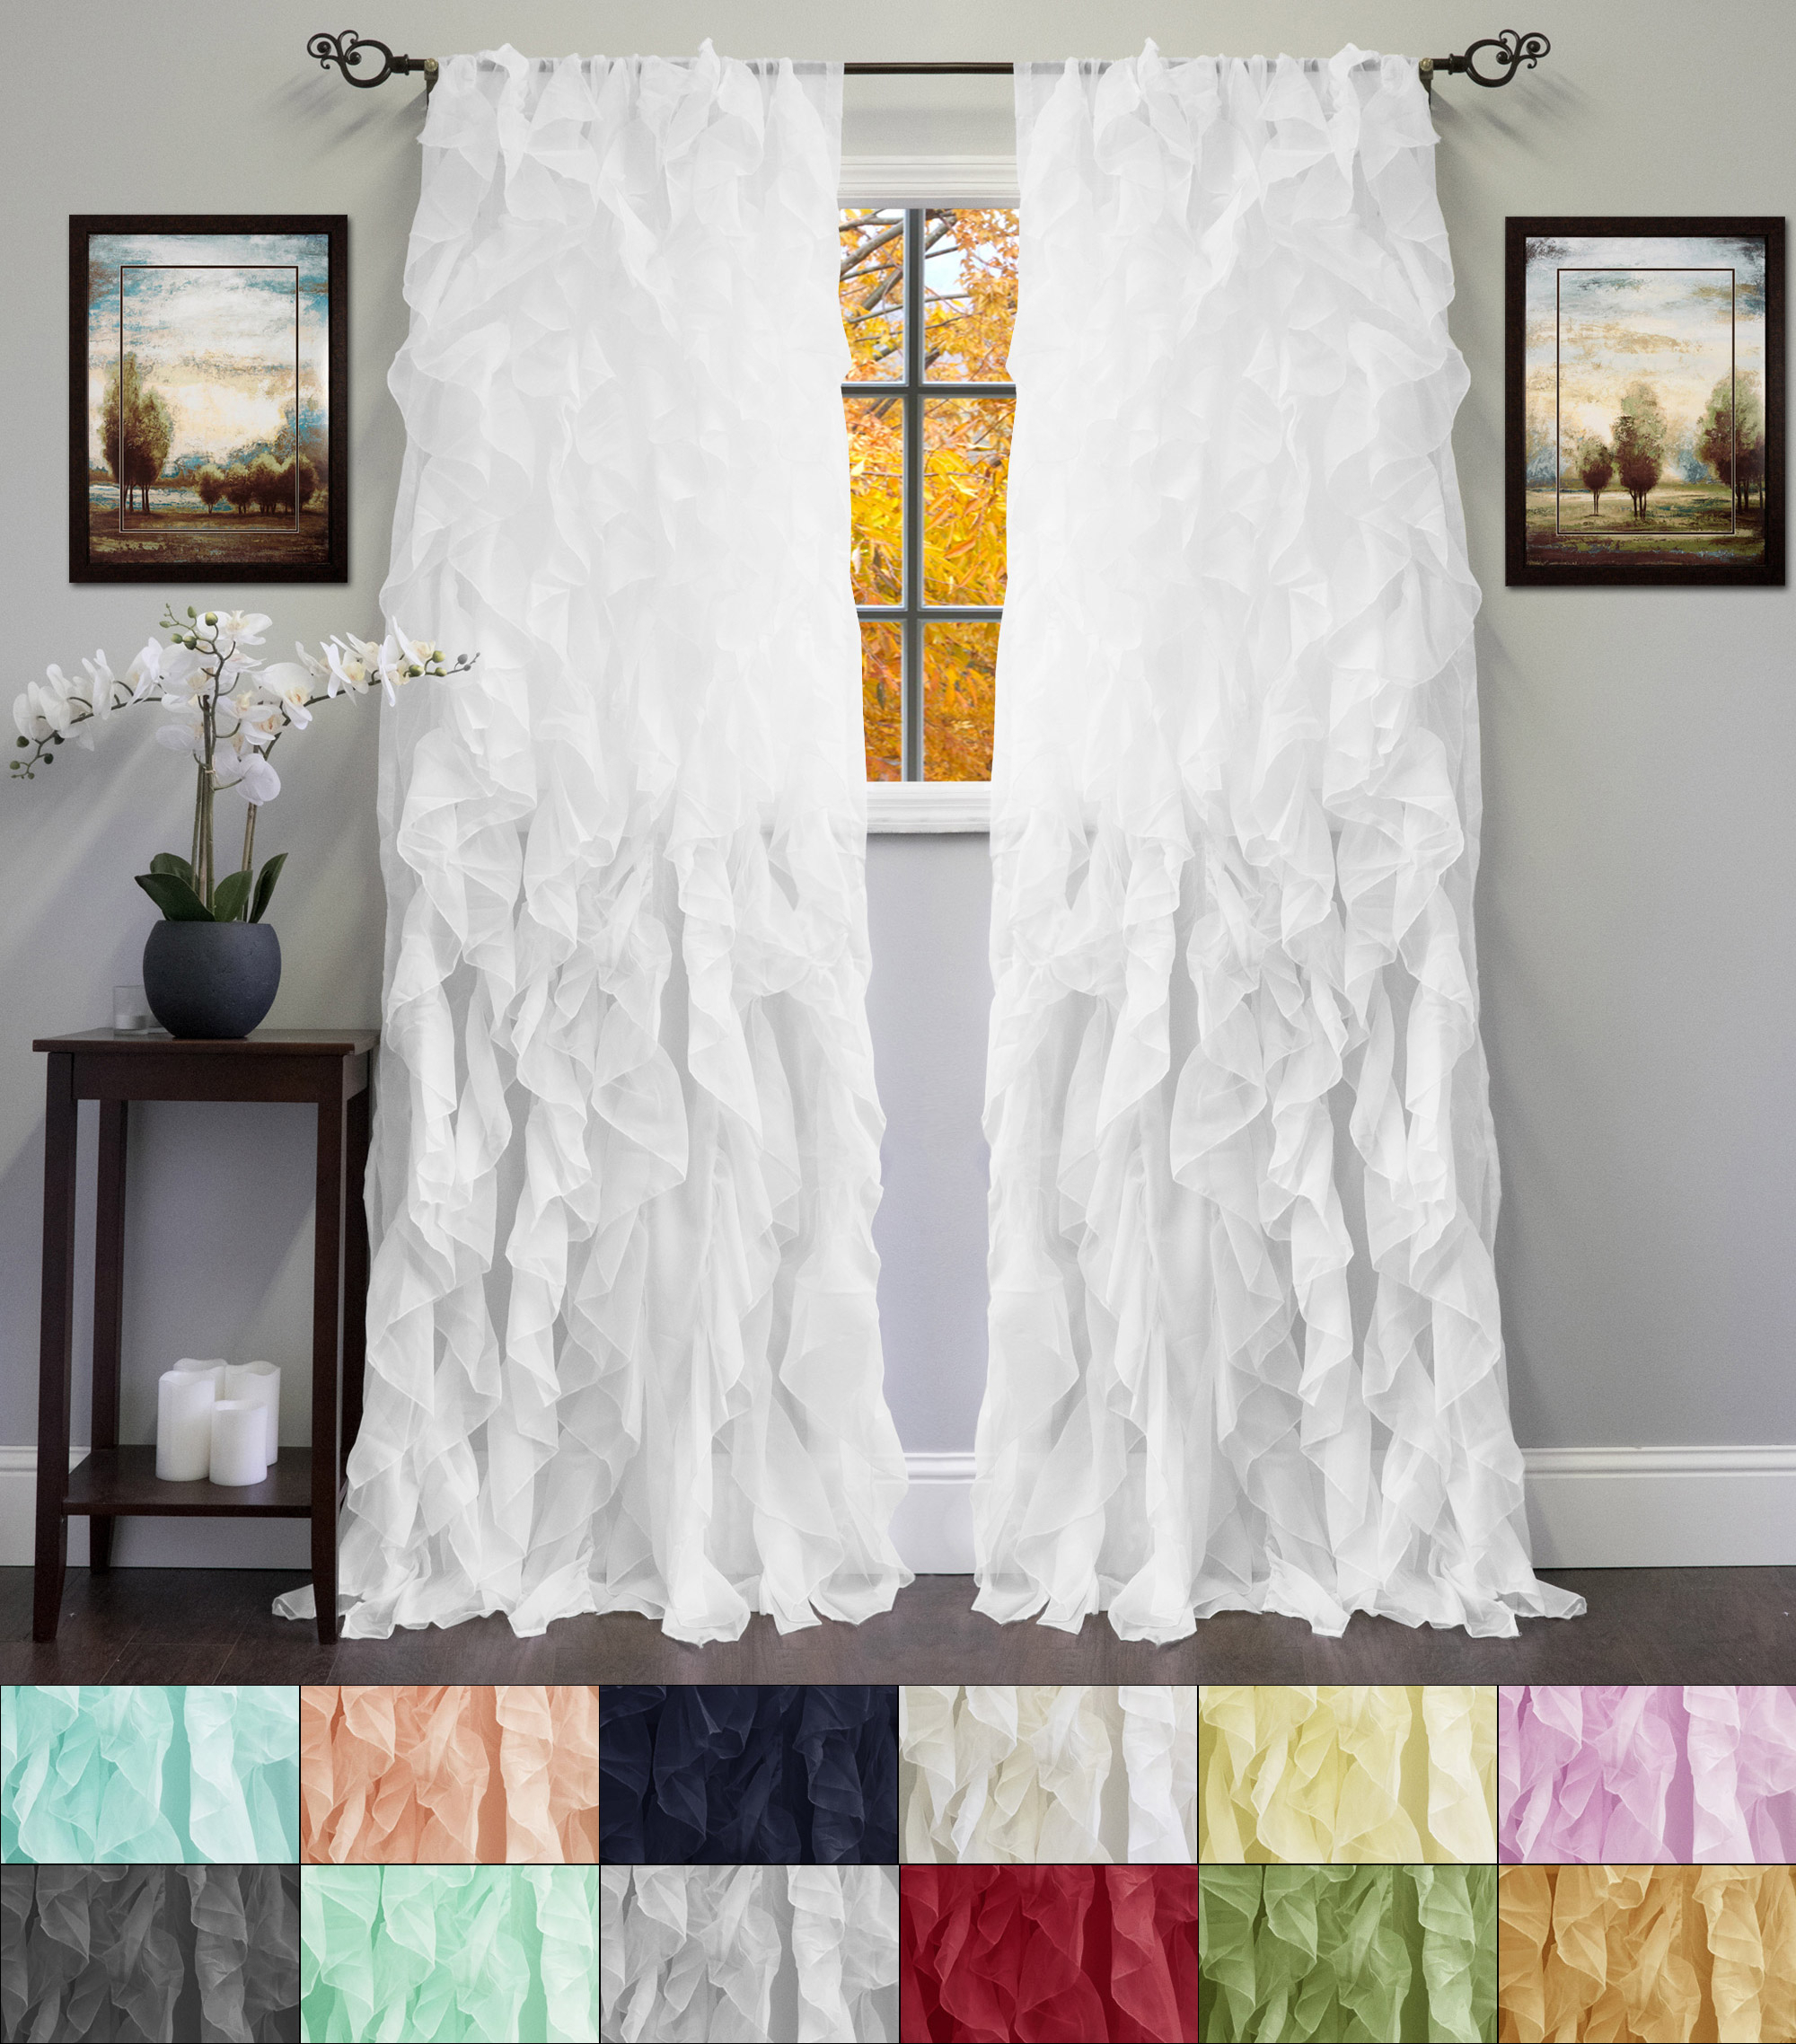 Popular Photo of Chic Sheer Voile Vertical Ruffled Window Curtain Tiers